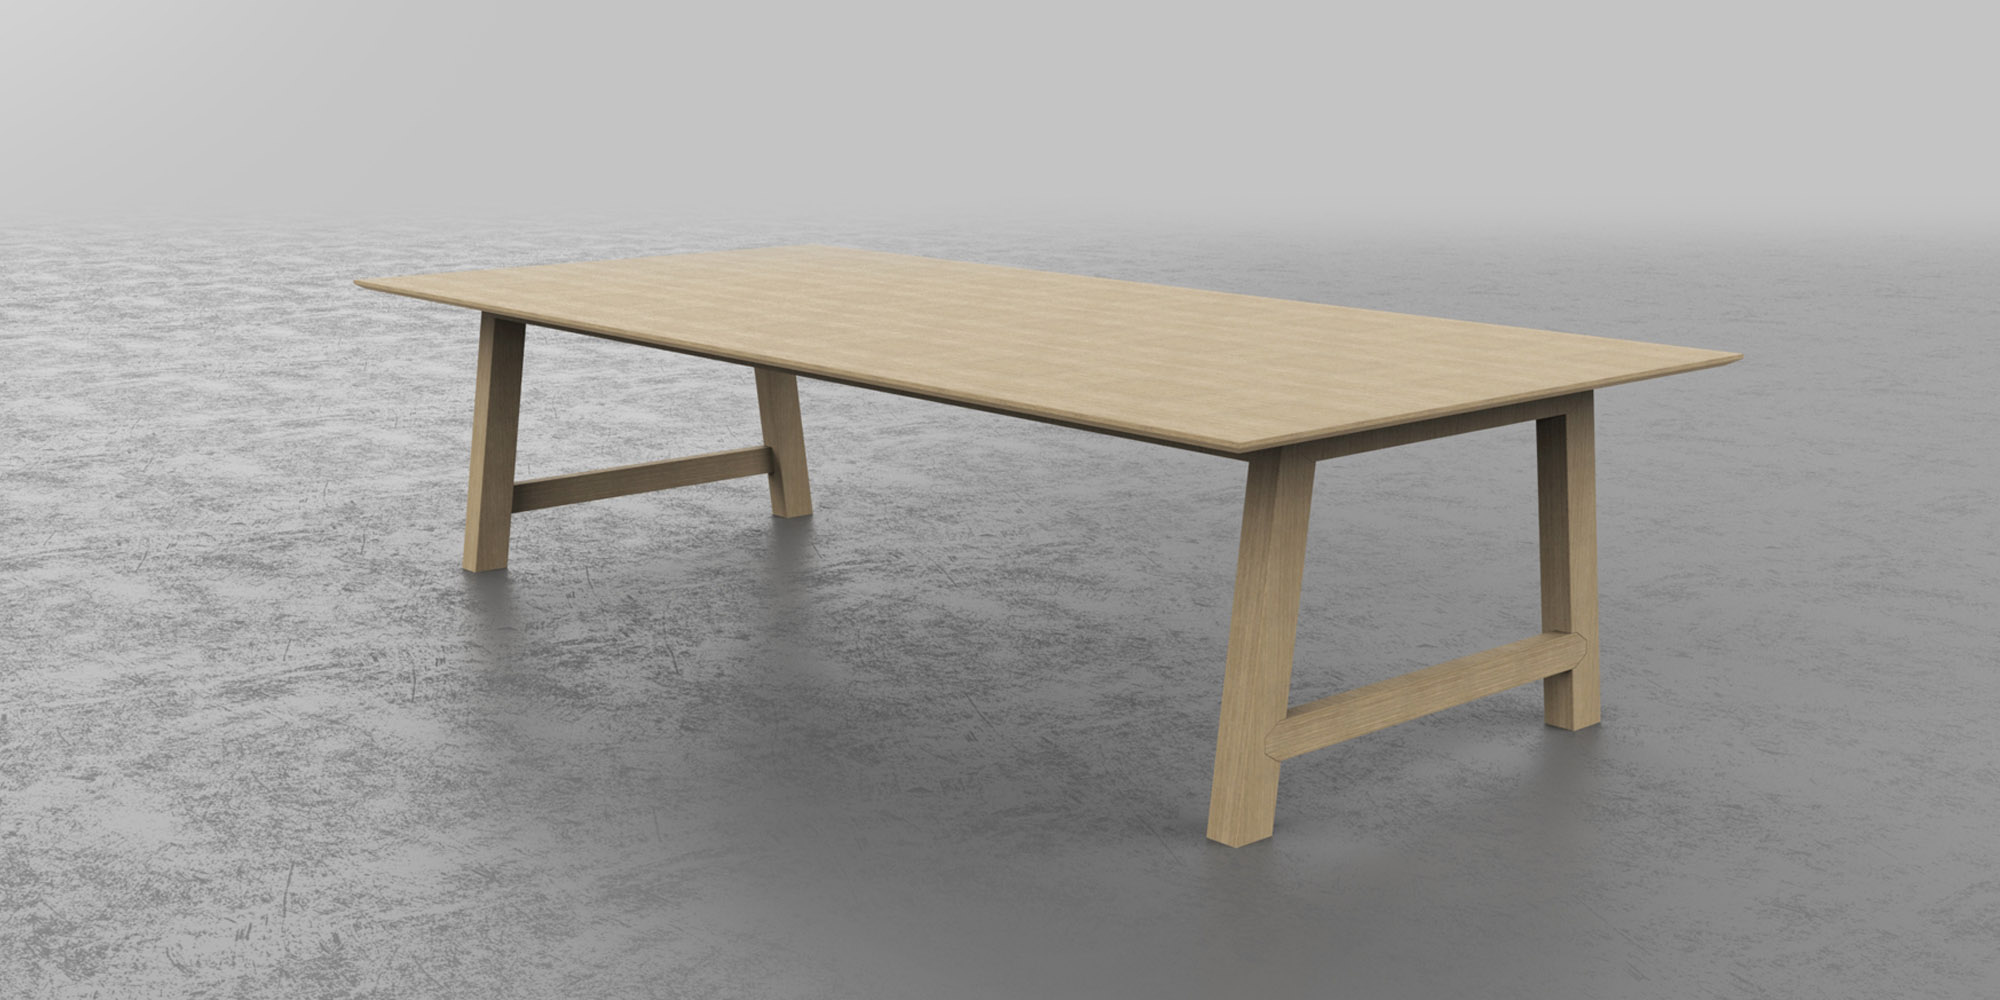 Jones-and-partners-wooden-furniture-table.jpg